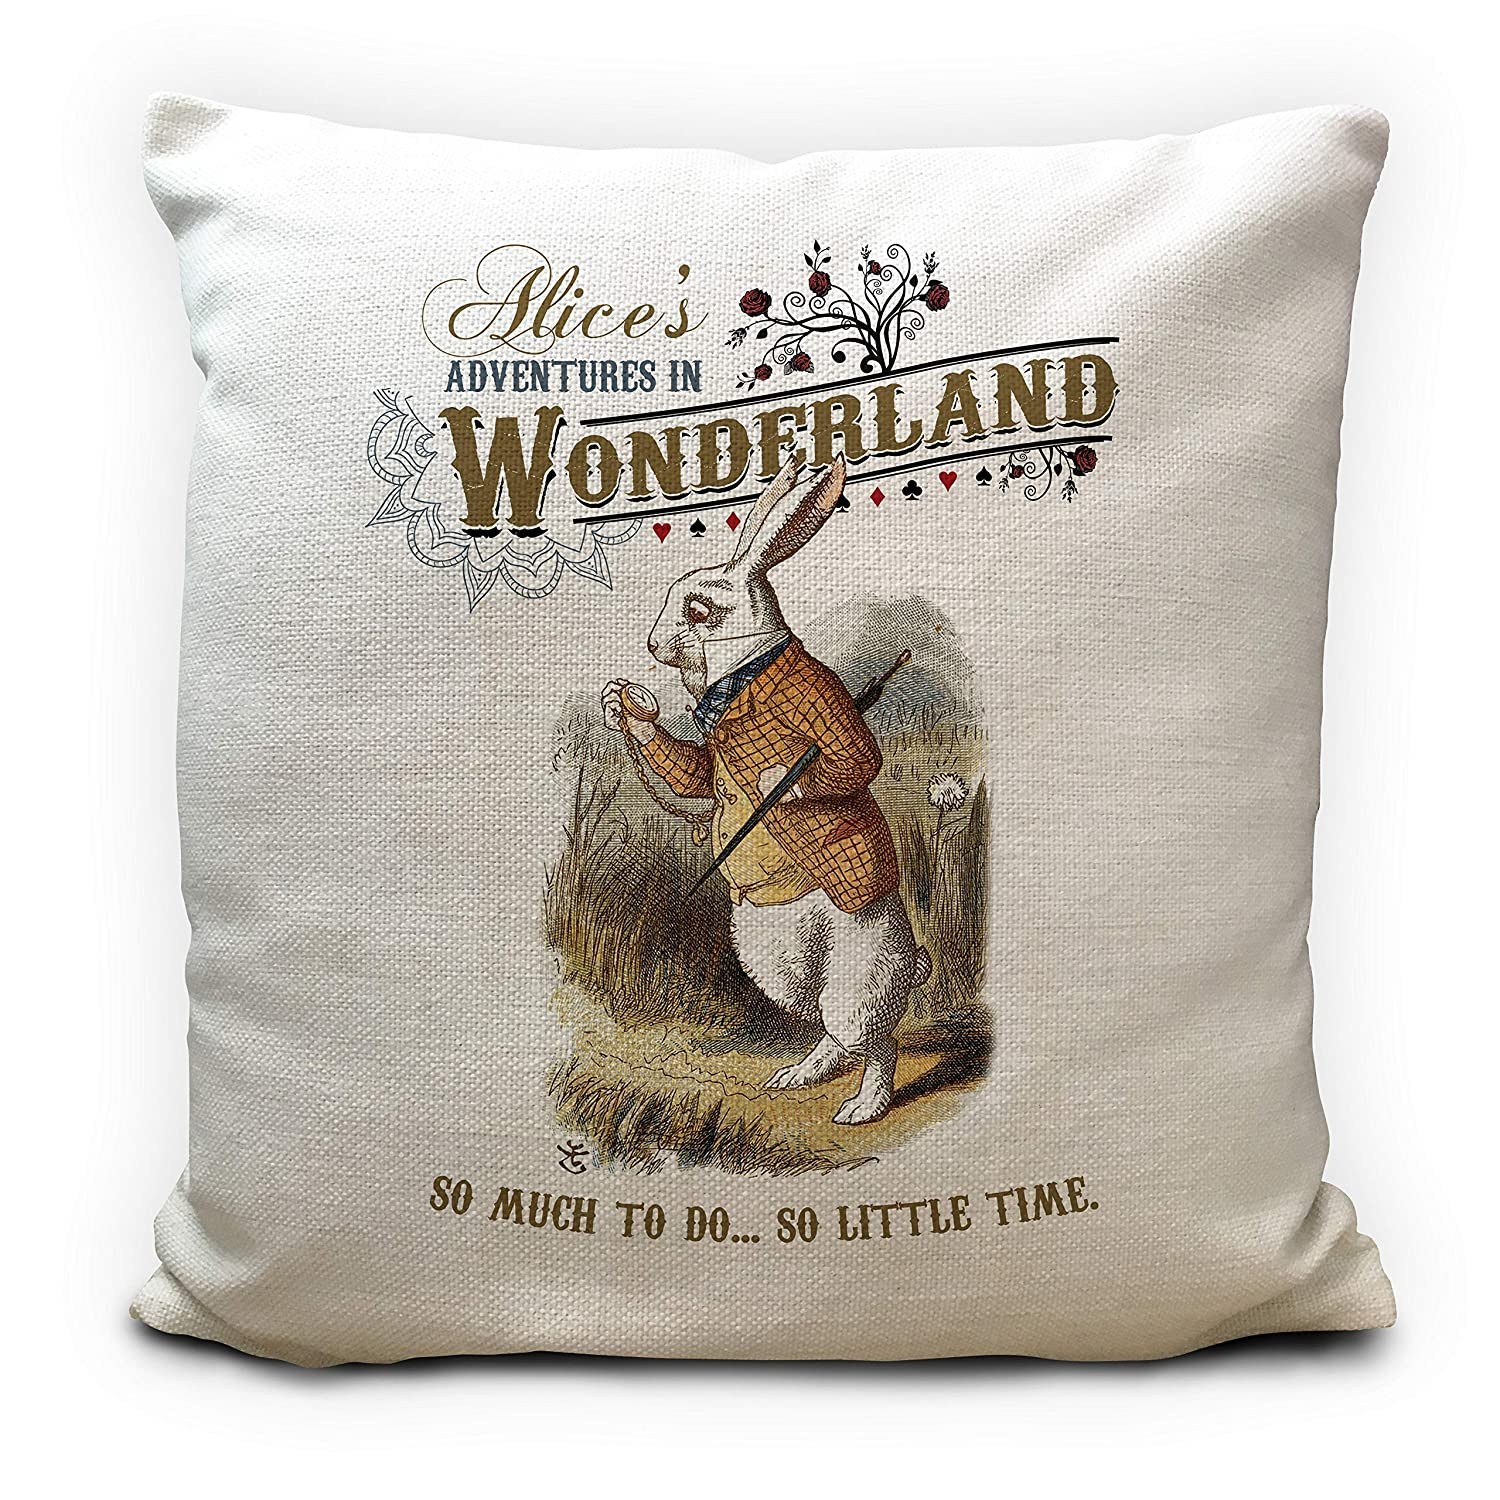 Alice in Wonderland Cushion Cover Gift Pillow Case So Little Time 16 inch 40cm